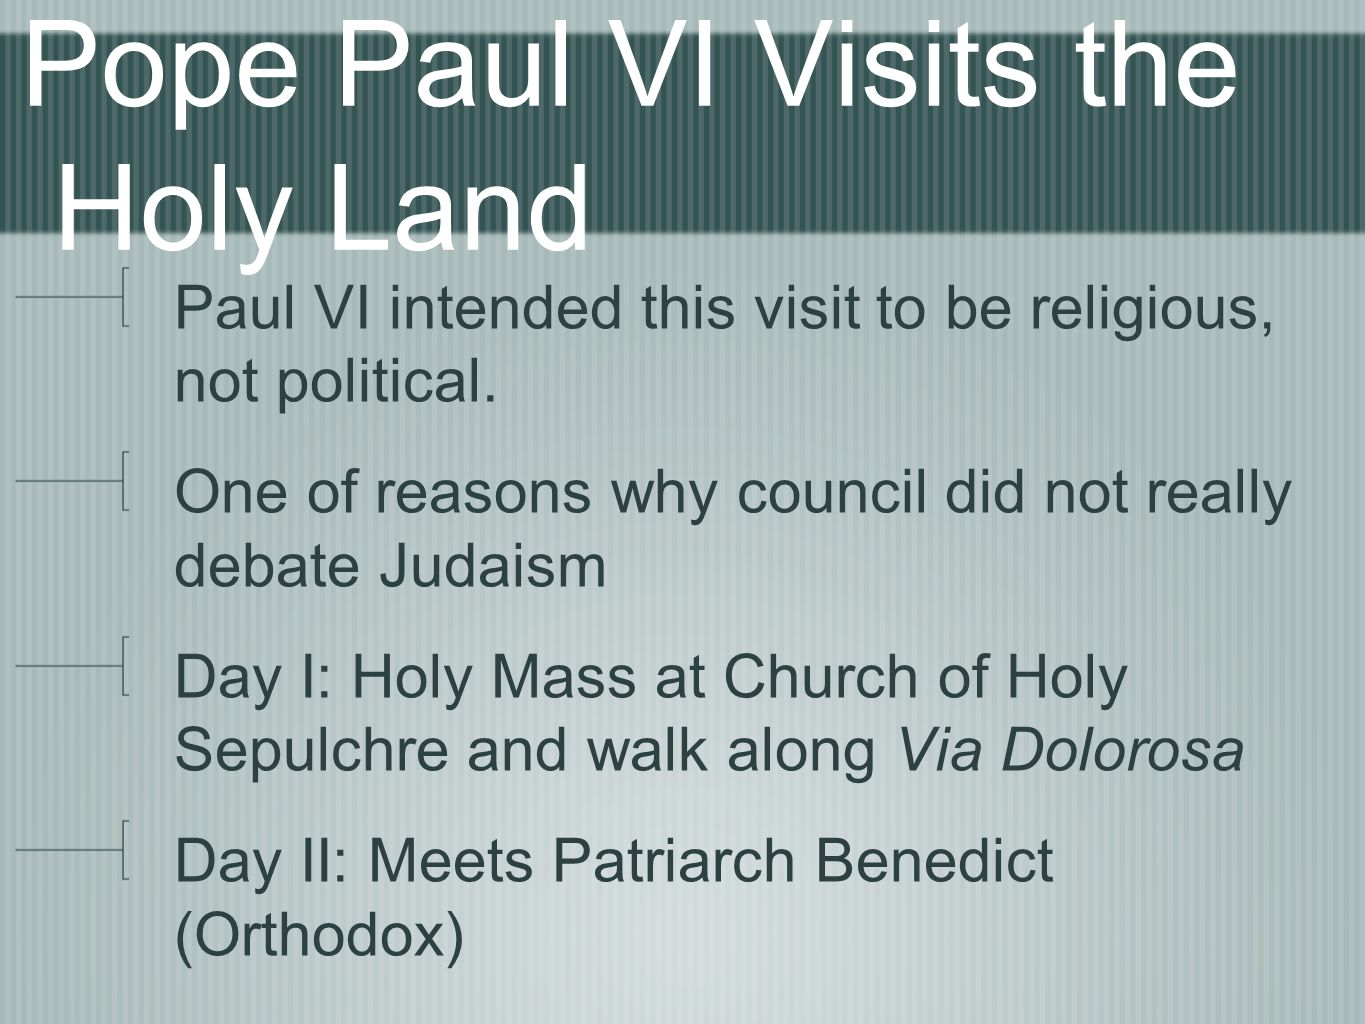 Pope Paul VI Visits the Holy Land Paul VI intended this visit to be religious, not political. One of reasons why council did not really debate Judaism